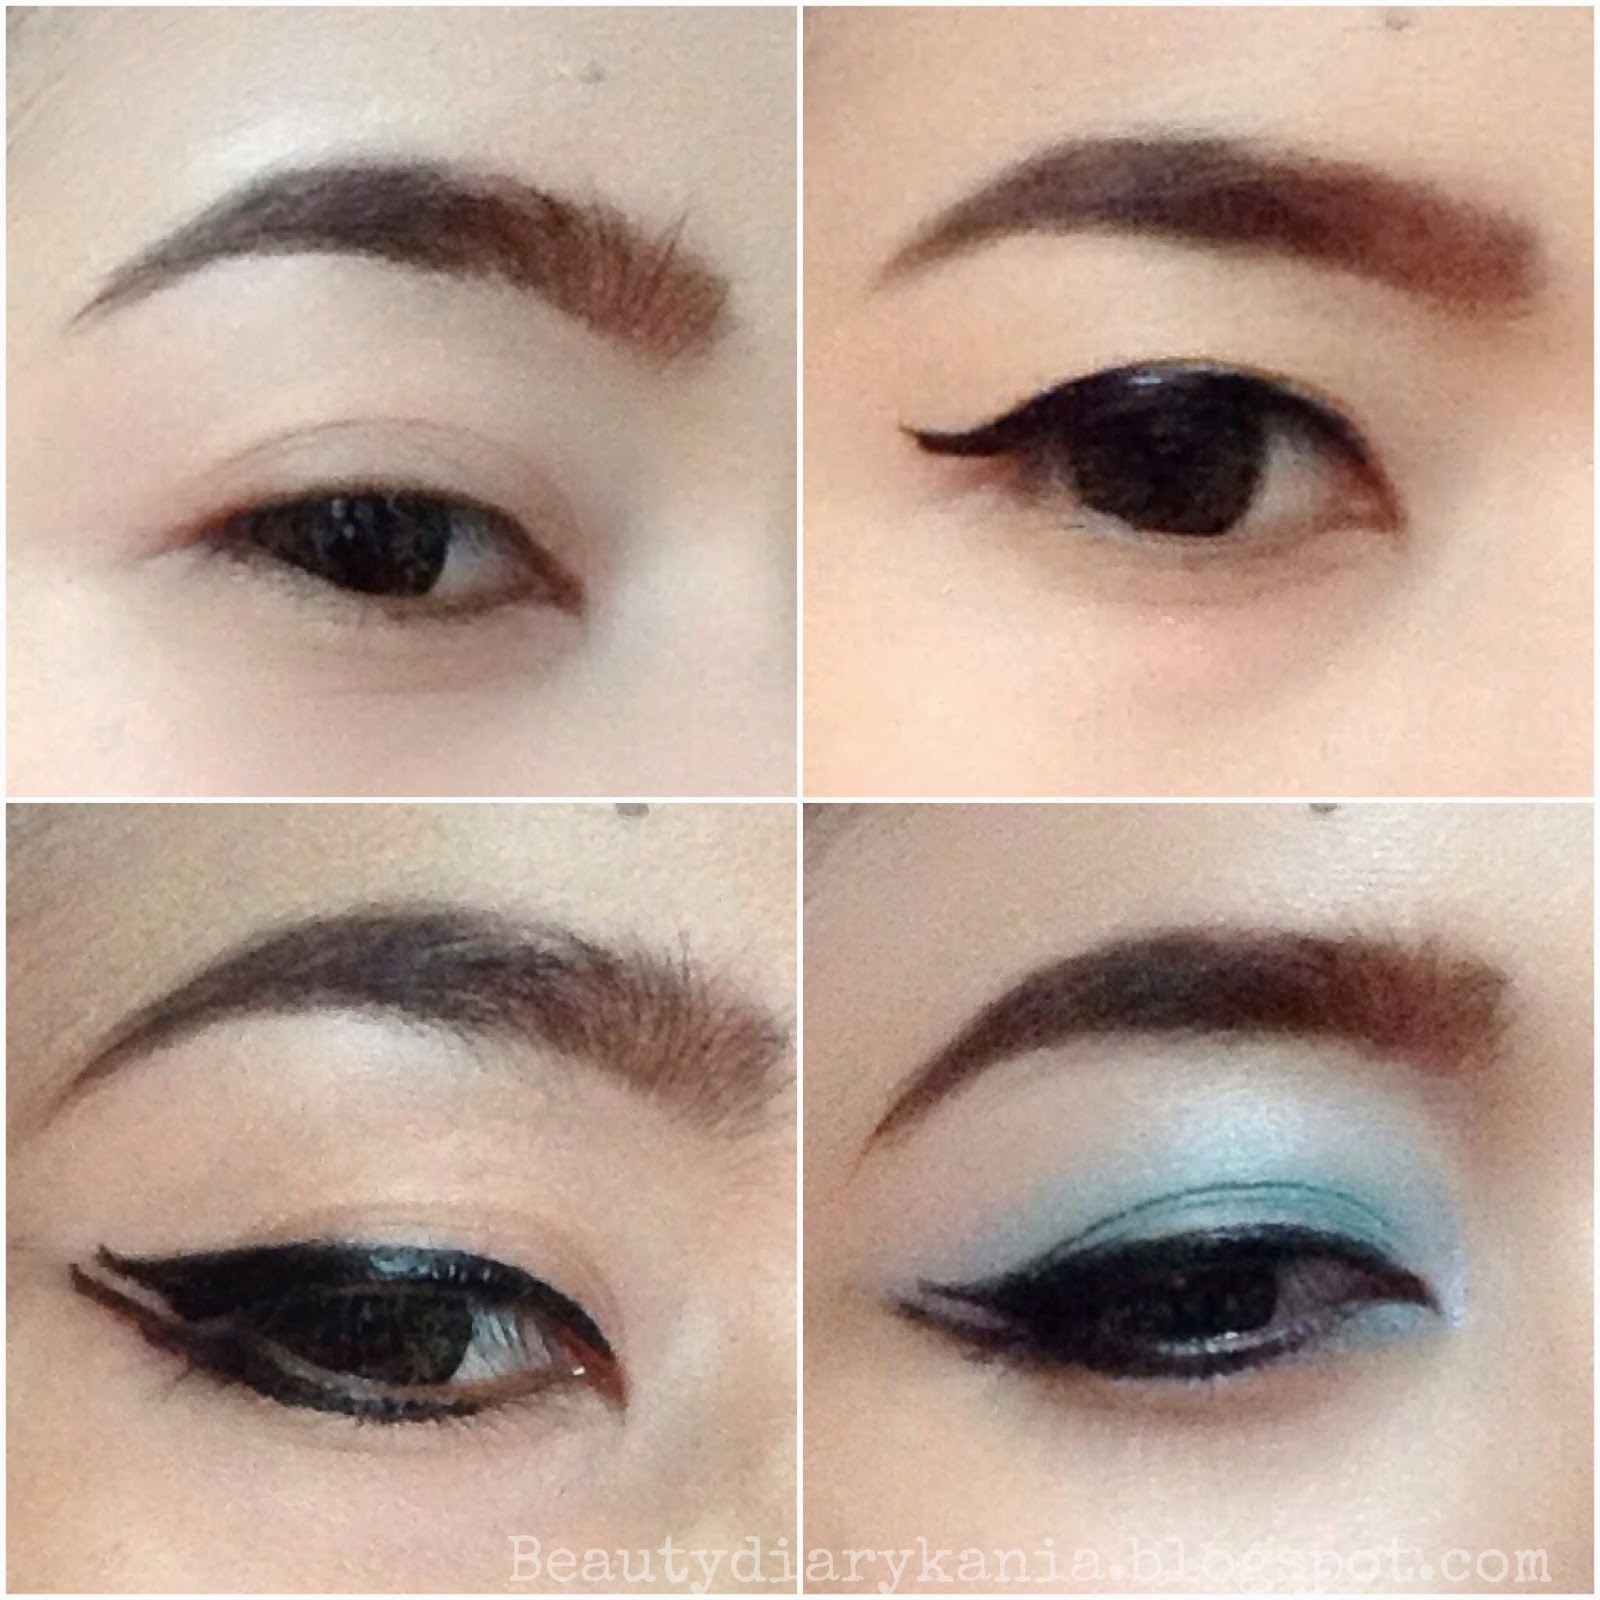 Beauty Diary Kania: Review Wardah Eye Expert Series ...